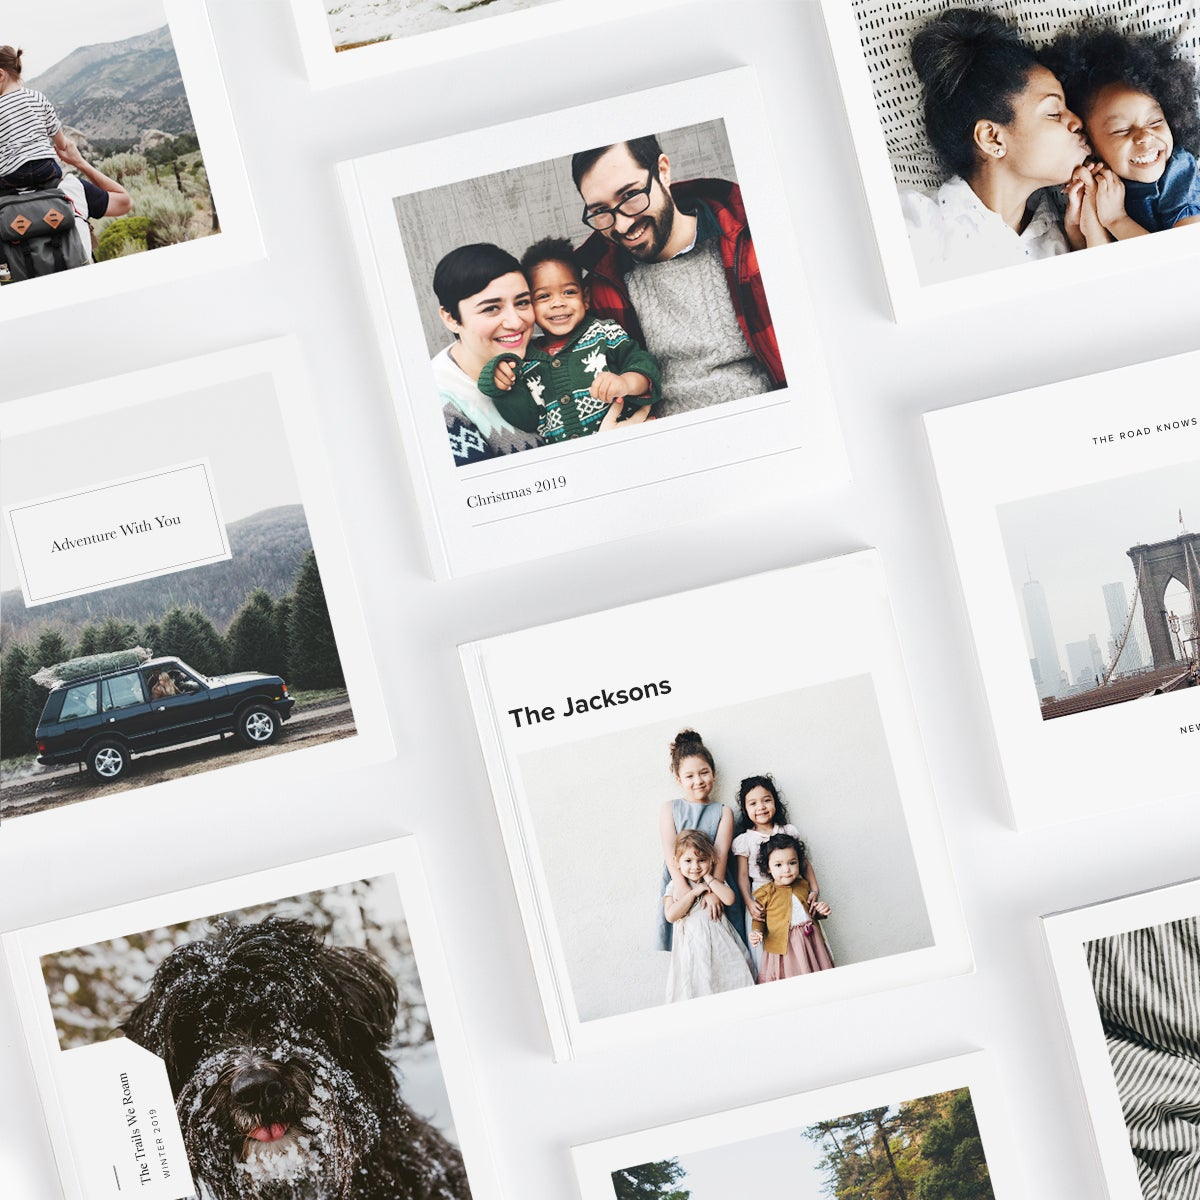 Many different Mini Photo Books lined in a grid